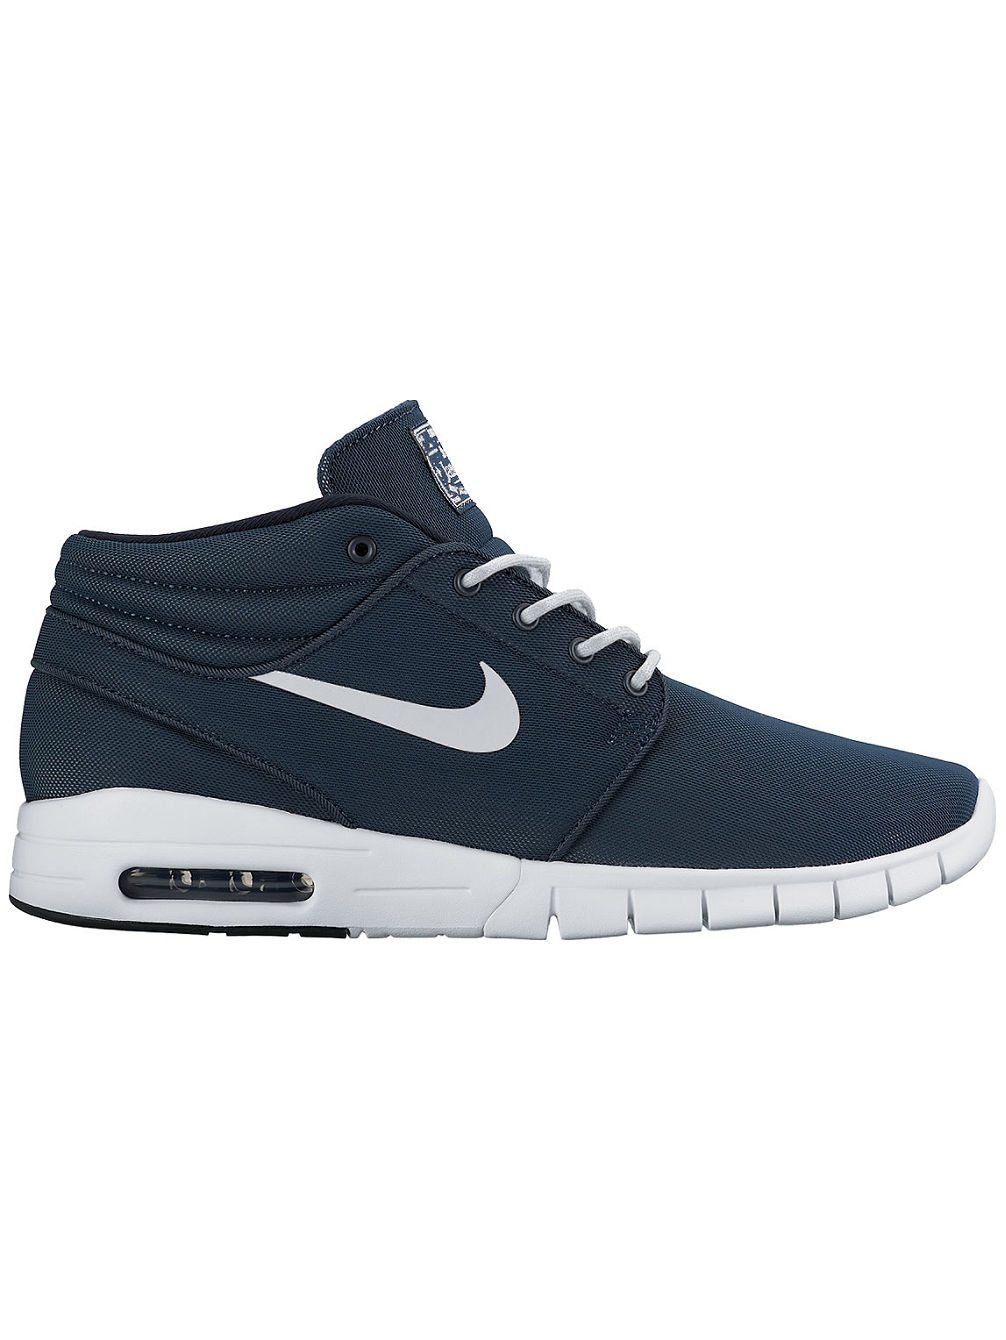 free shipping 419c9 02640 ... nike air max squeaking shoes. janoski 45 blue white ...